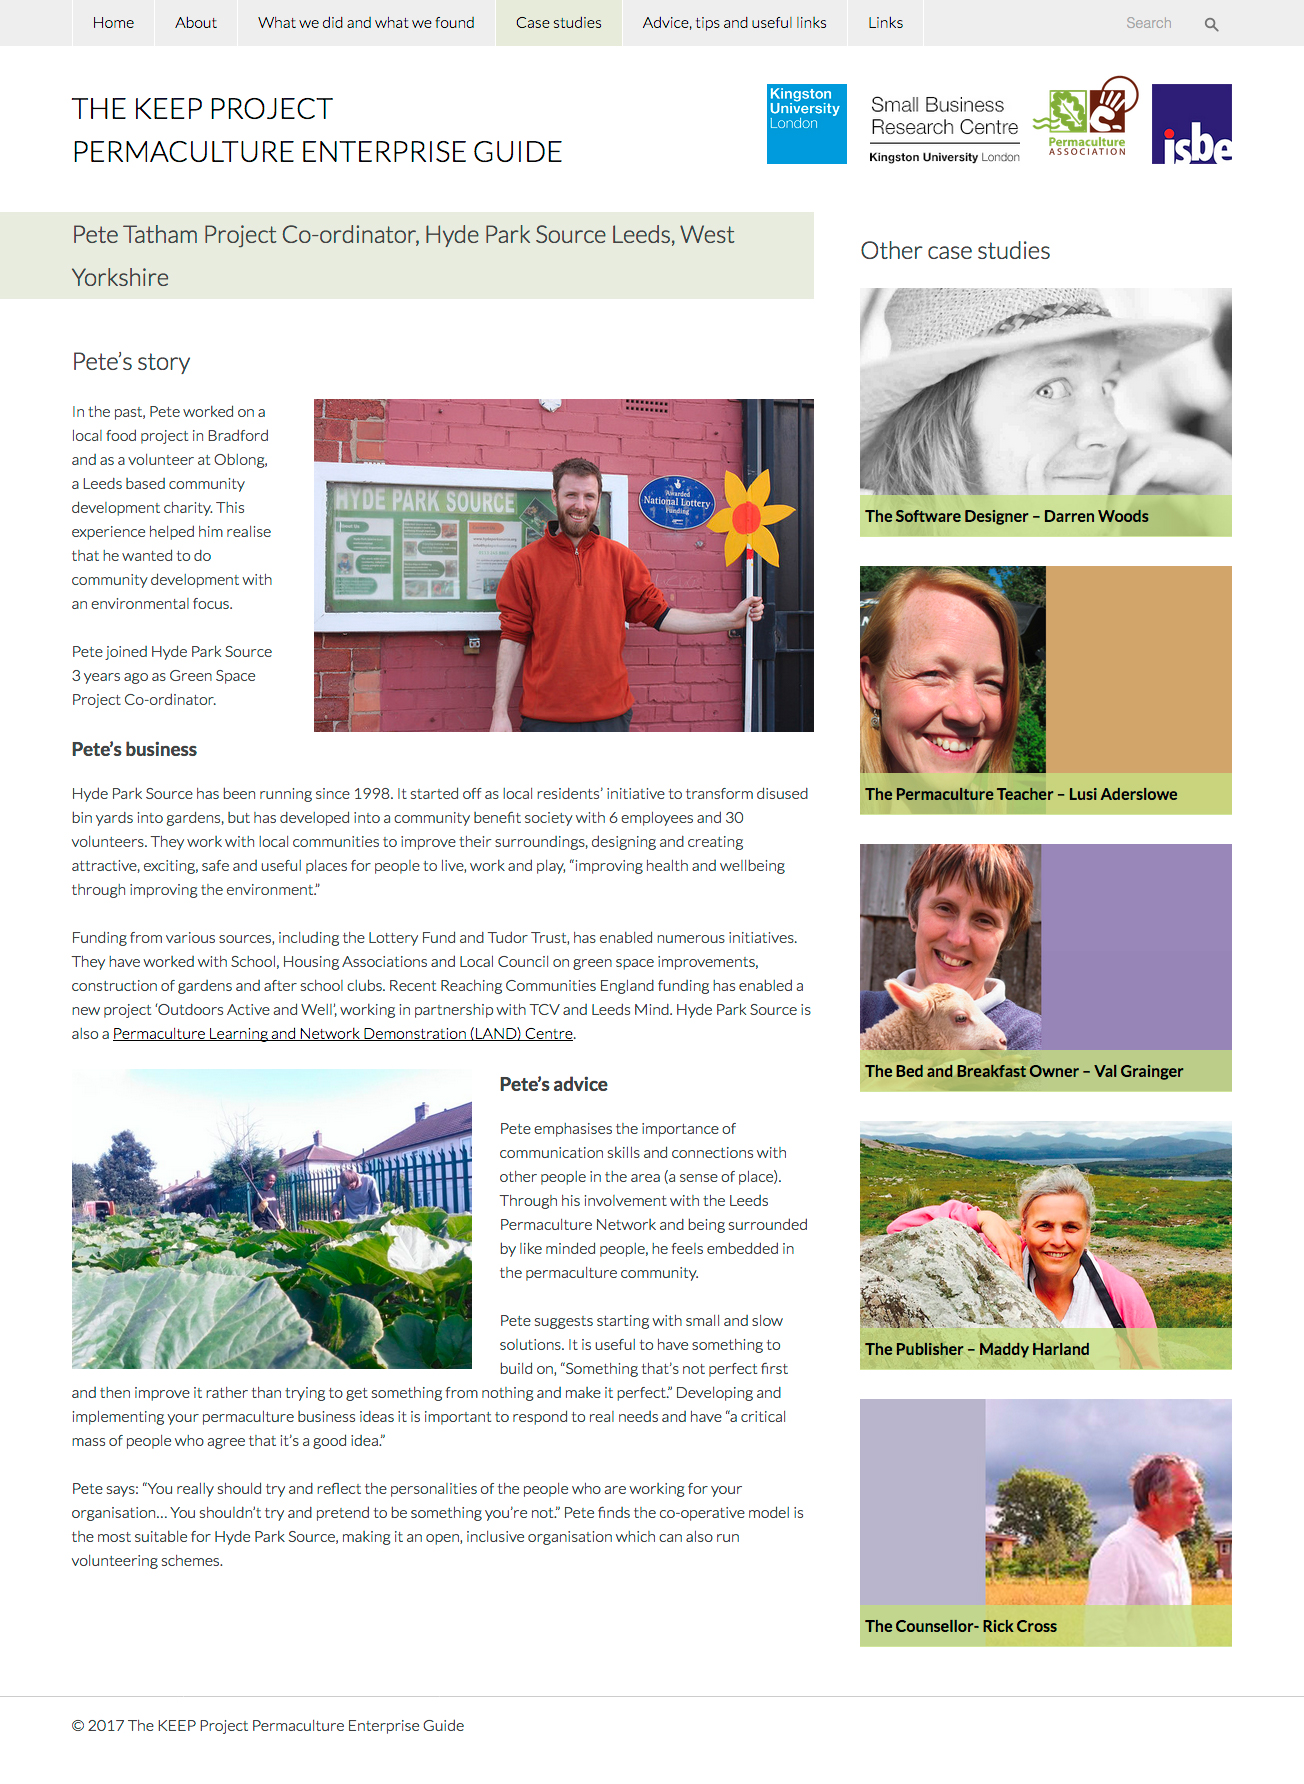 THE KEEP PROJECT Permaculture Enterprise Guide website screenshot